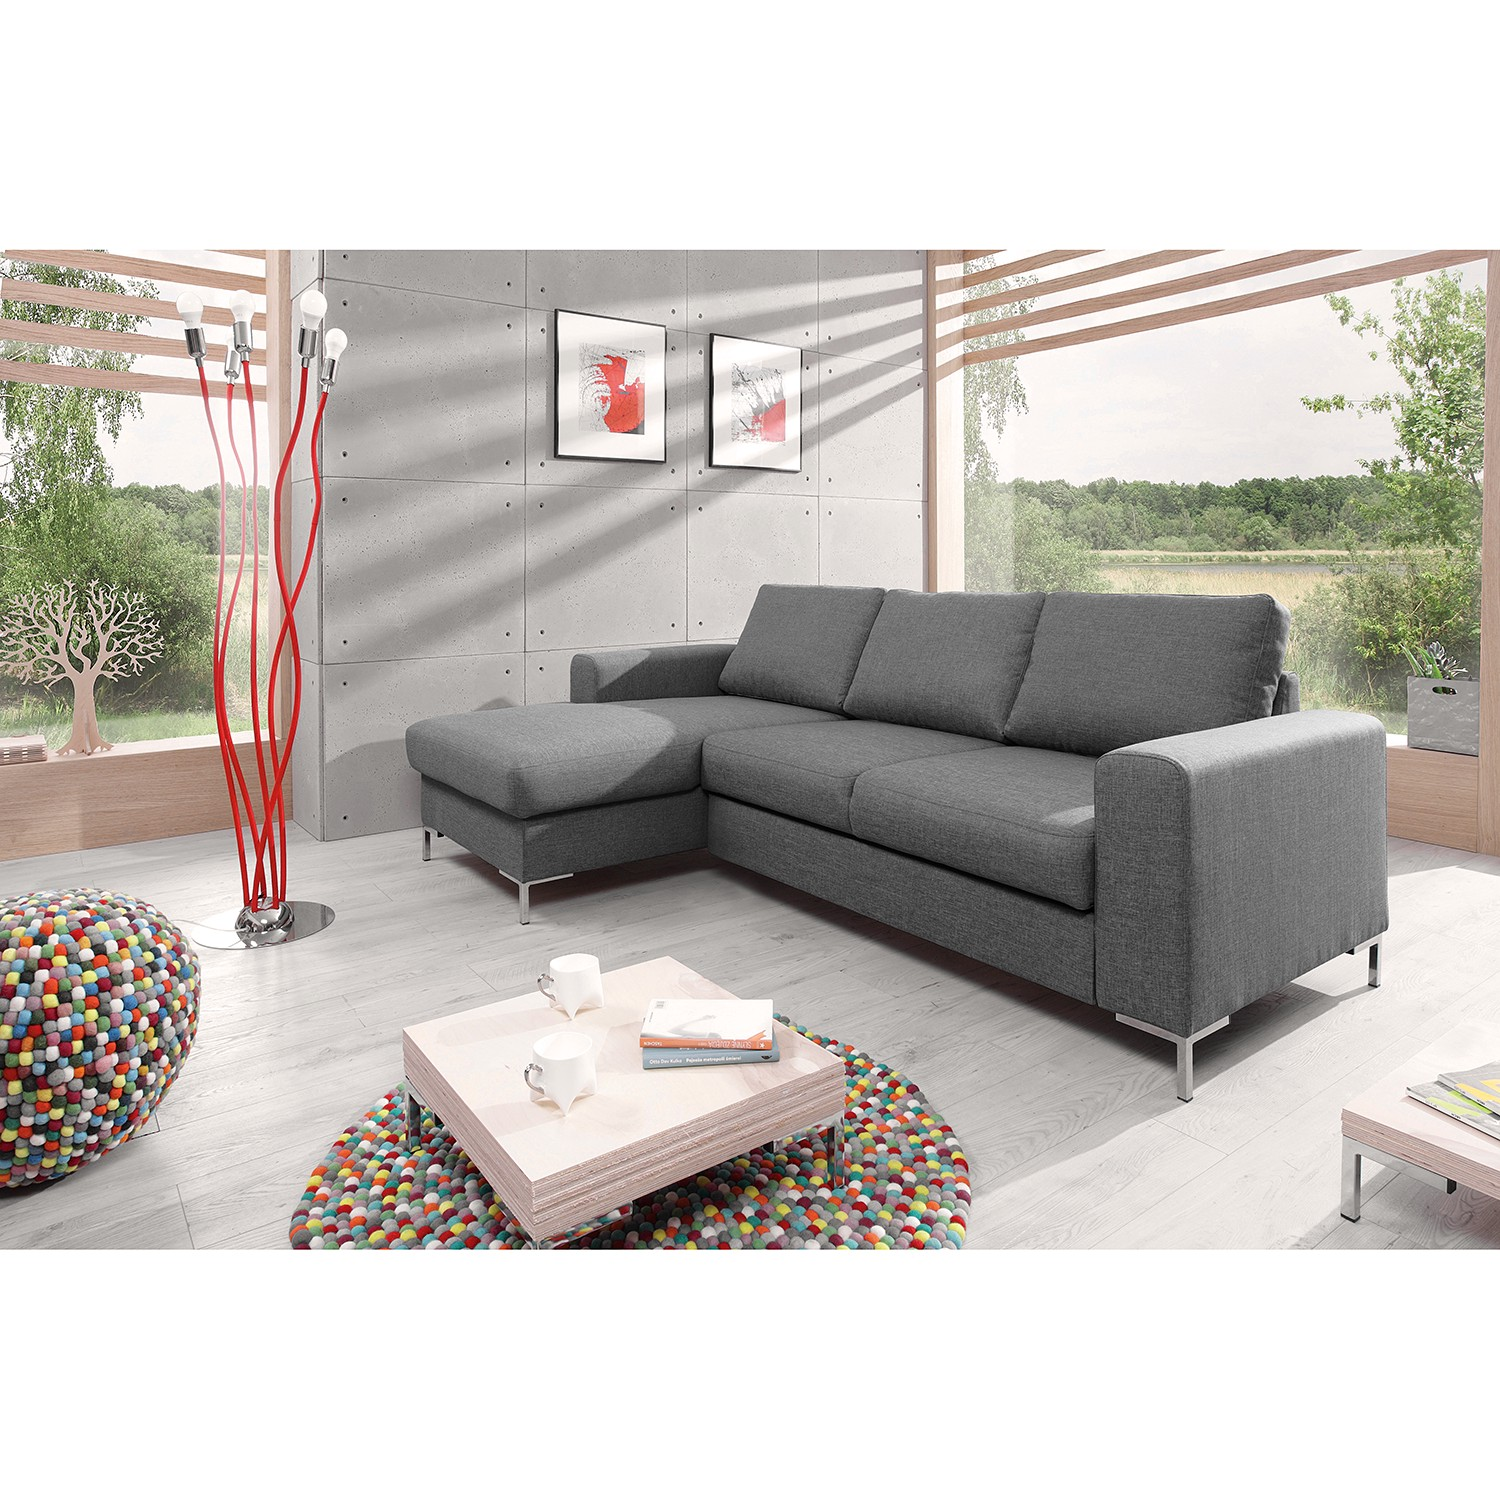 home24 Ecksofa Summer II